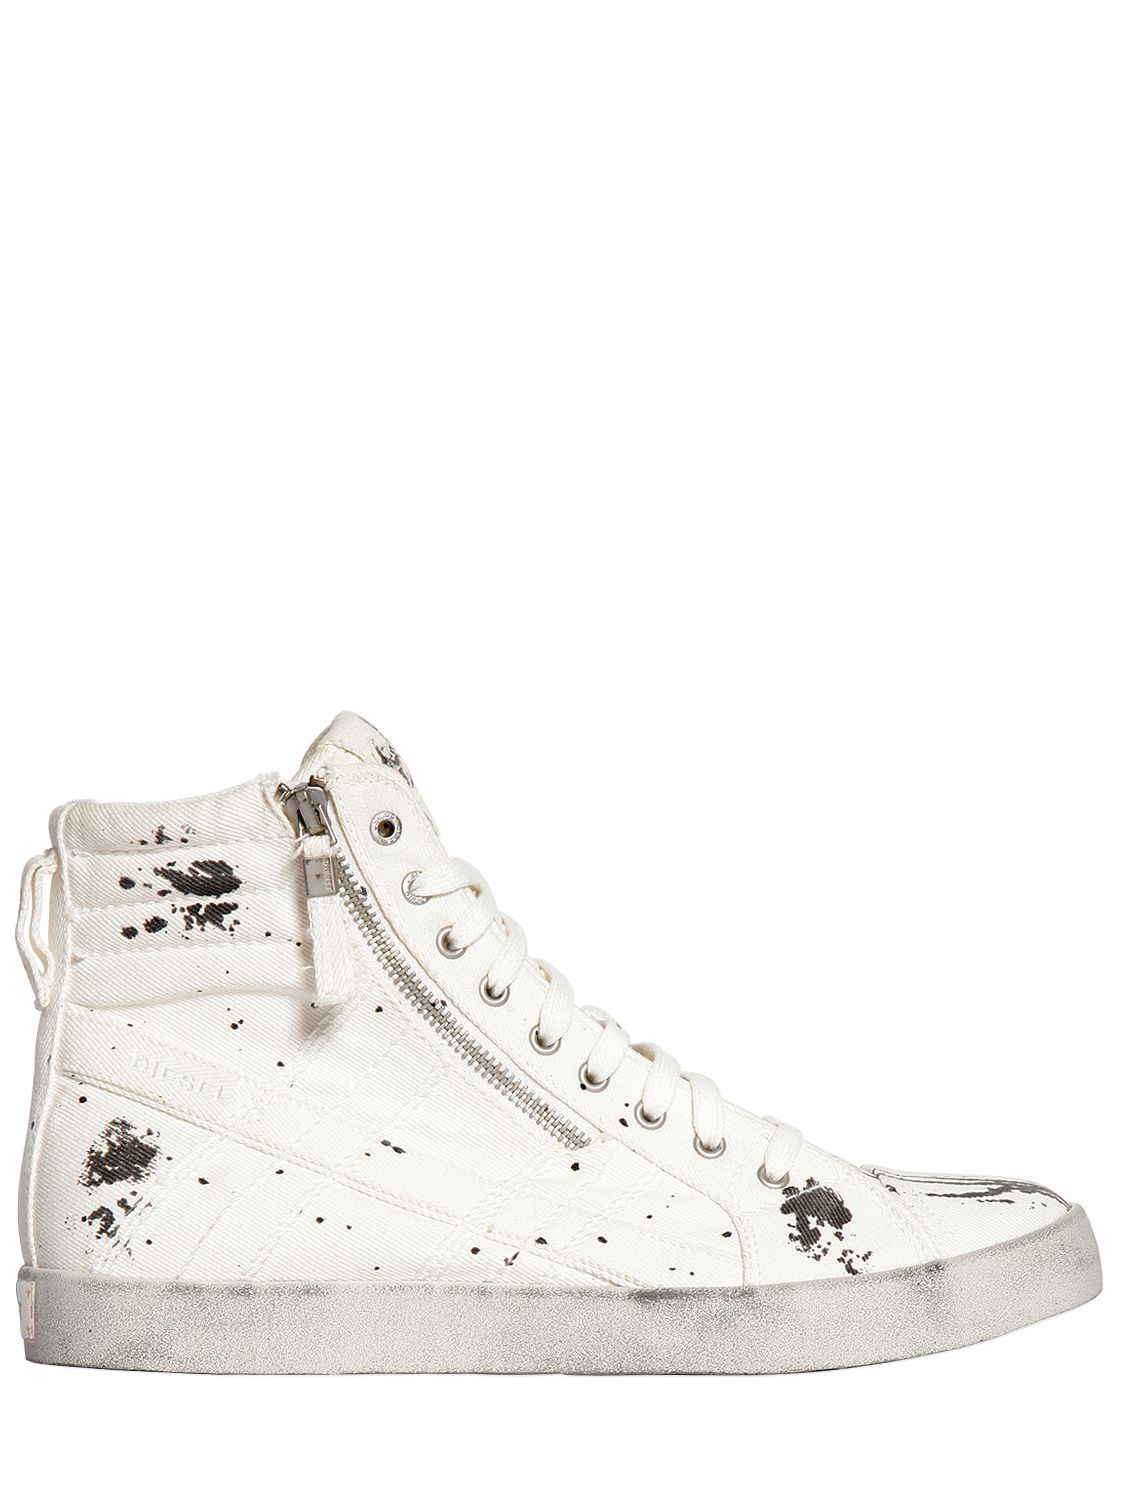 Diesel SPRAYED SIDE ZIP HIGH TOP SNEAKERS